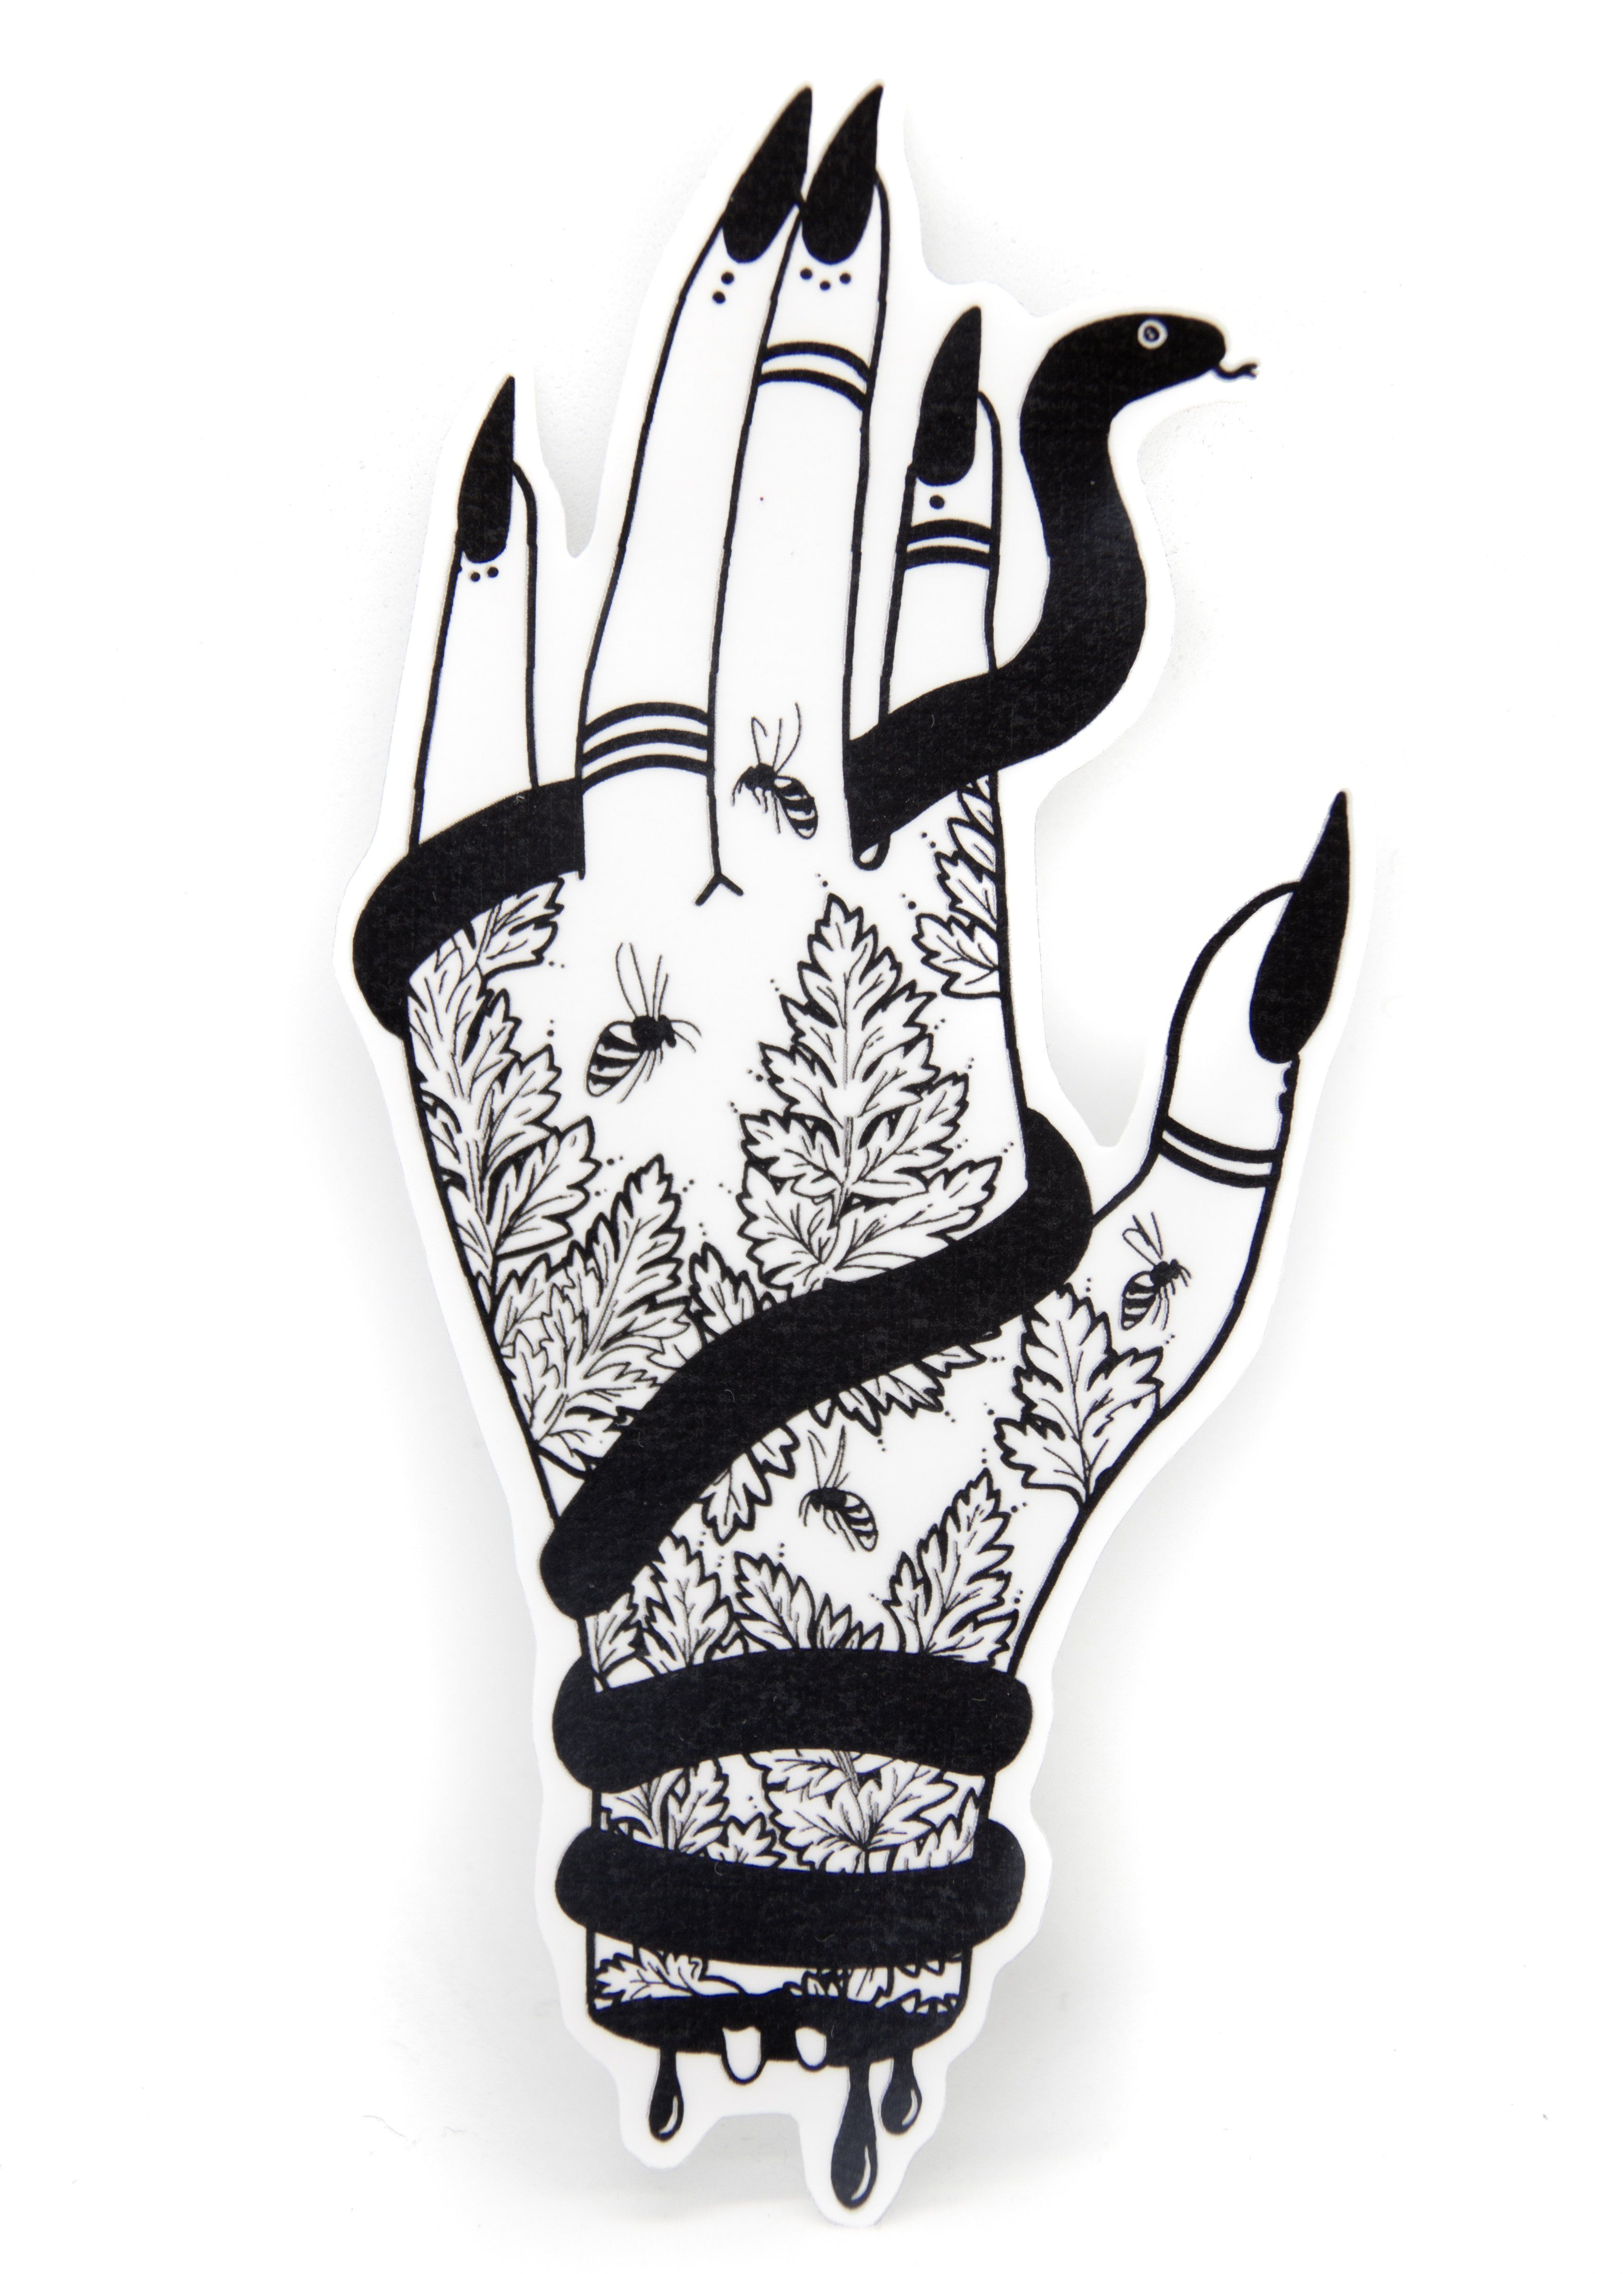 Black and white sticker of a witchy tattooed hand holding